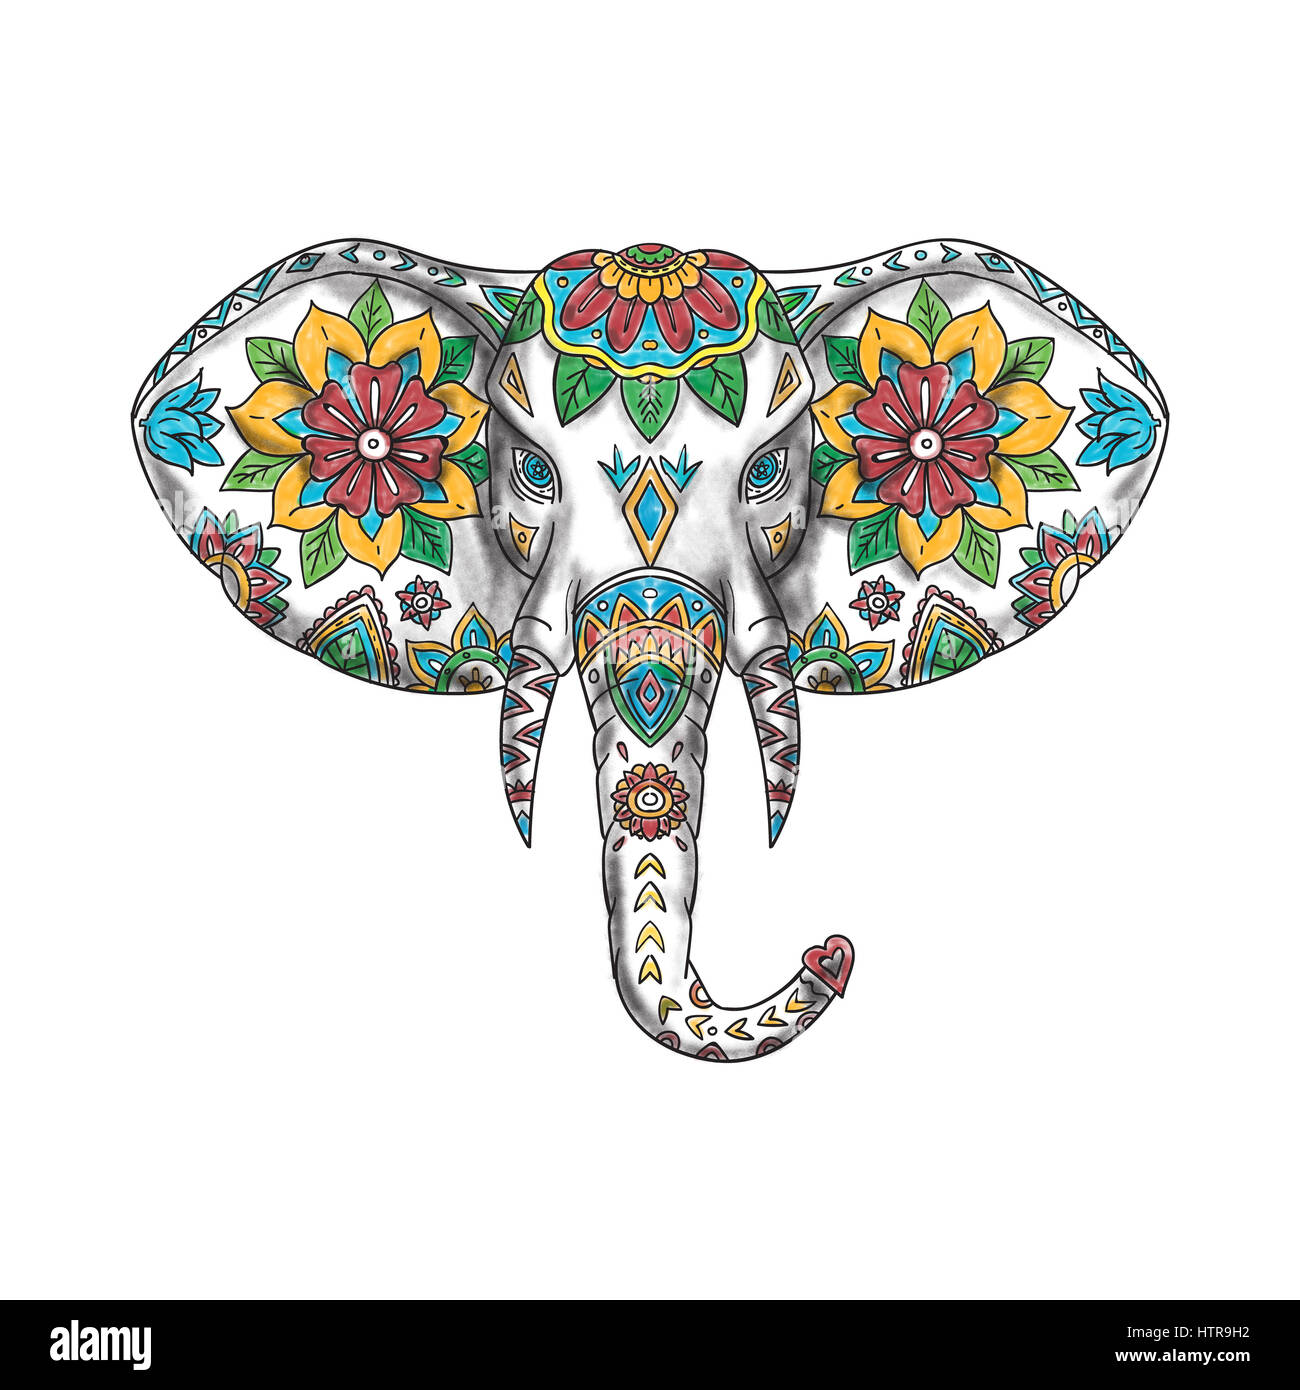 Tattoo Style Illustration Of An Elephant Head Viewed From Front